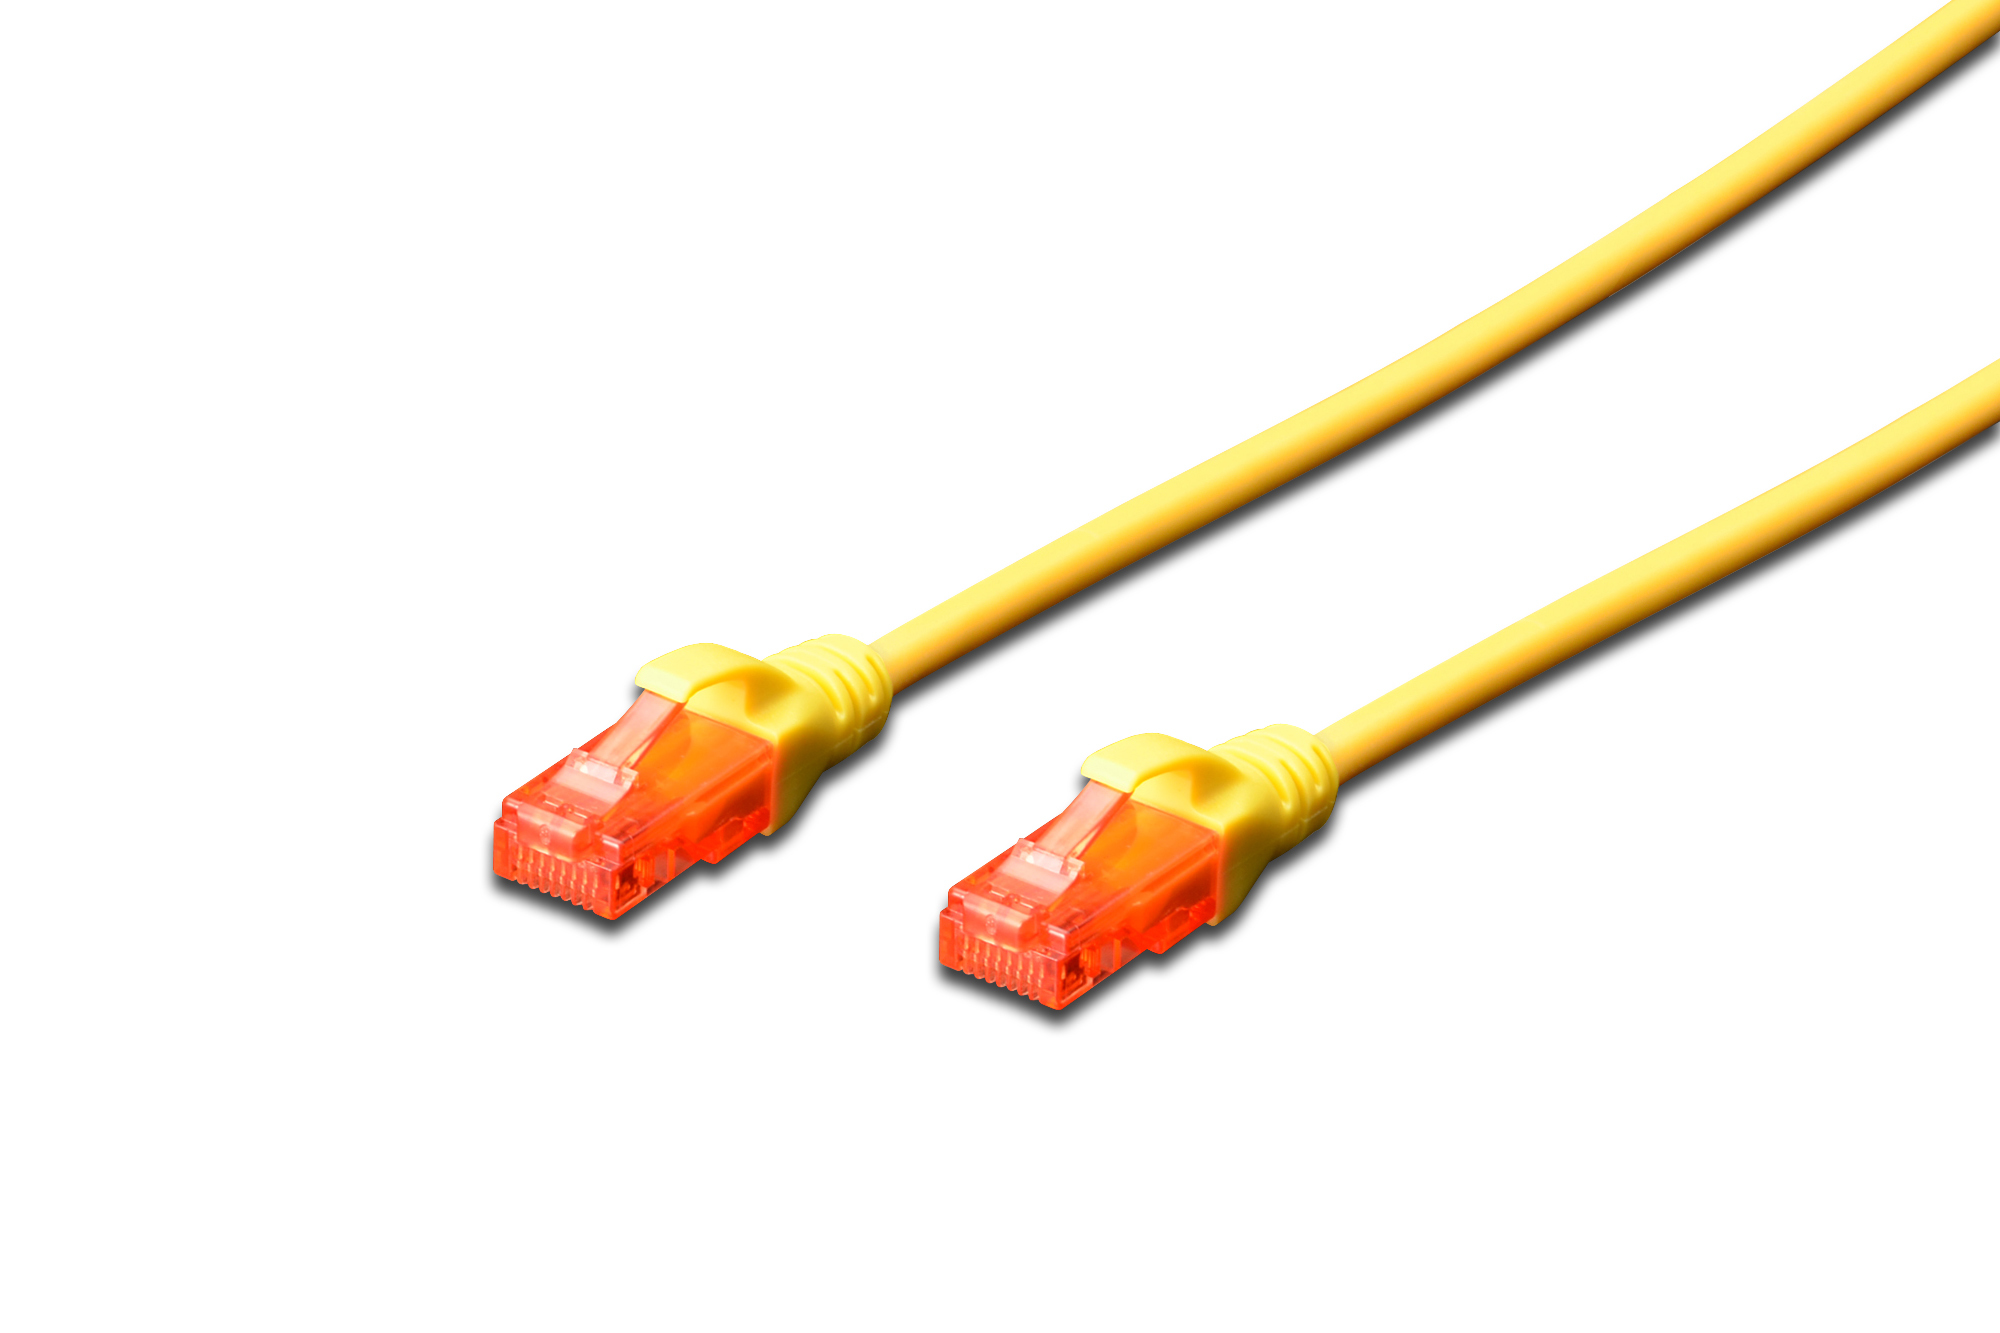 DIGITUS DK-1617-005/Y 0.5M CAT6 UTP NETWORKING CABLE U/UTP (UTP) YELLOW